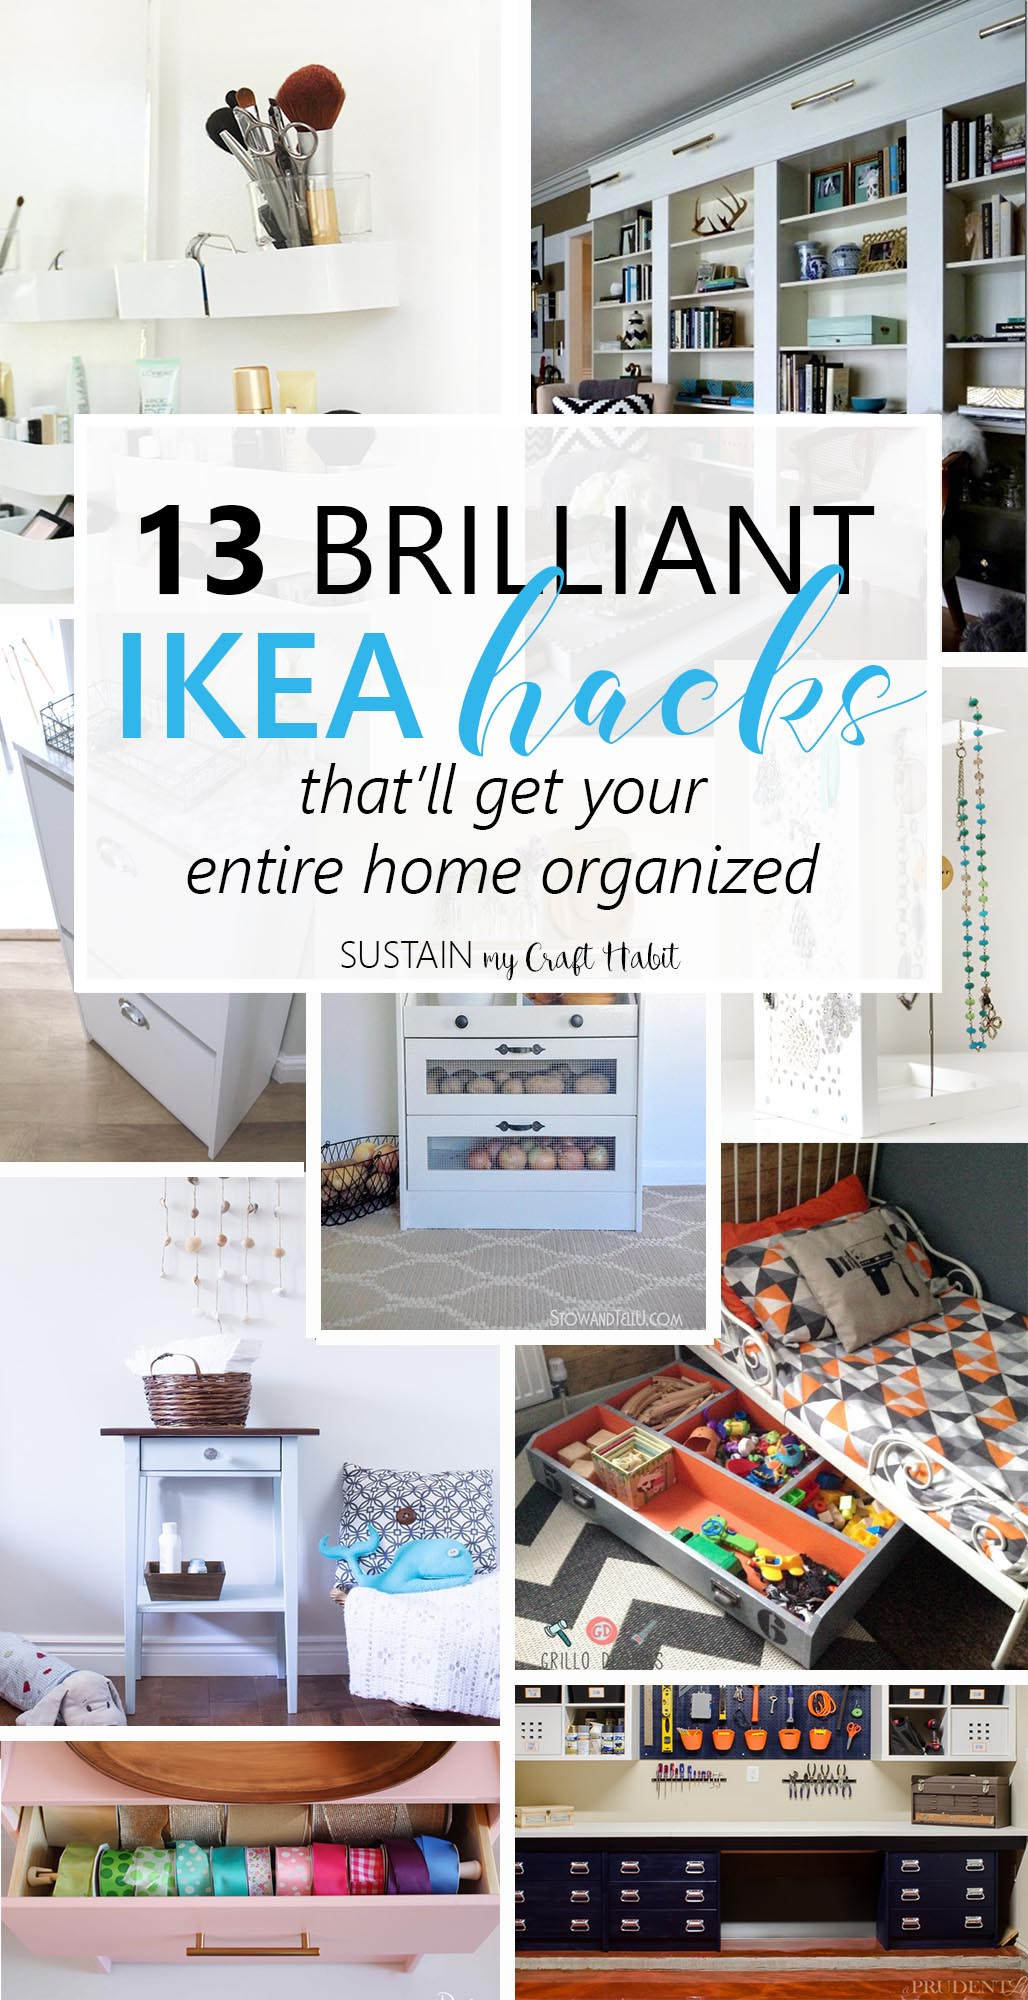 13 Brilliant Ikea Hacks To Get Your Home Organized